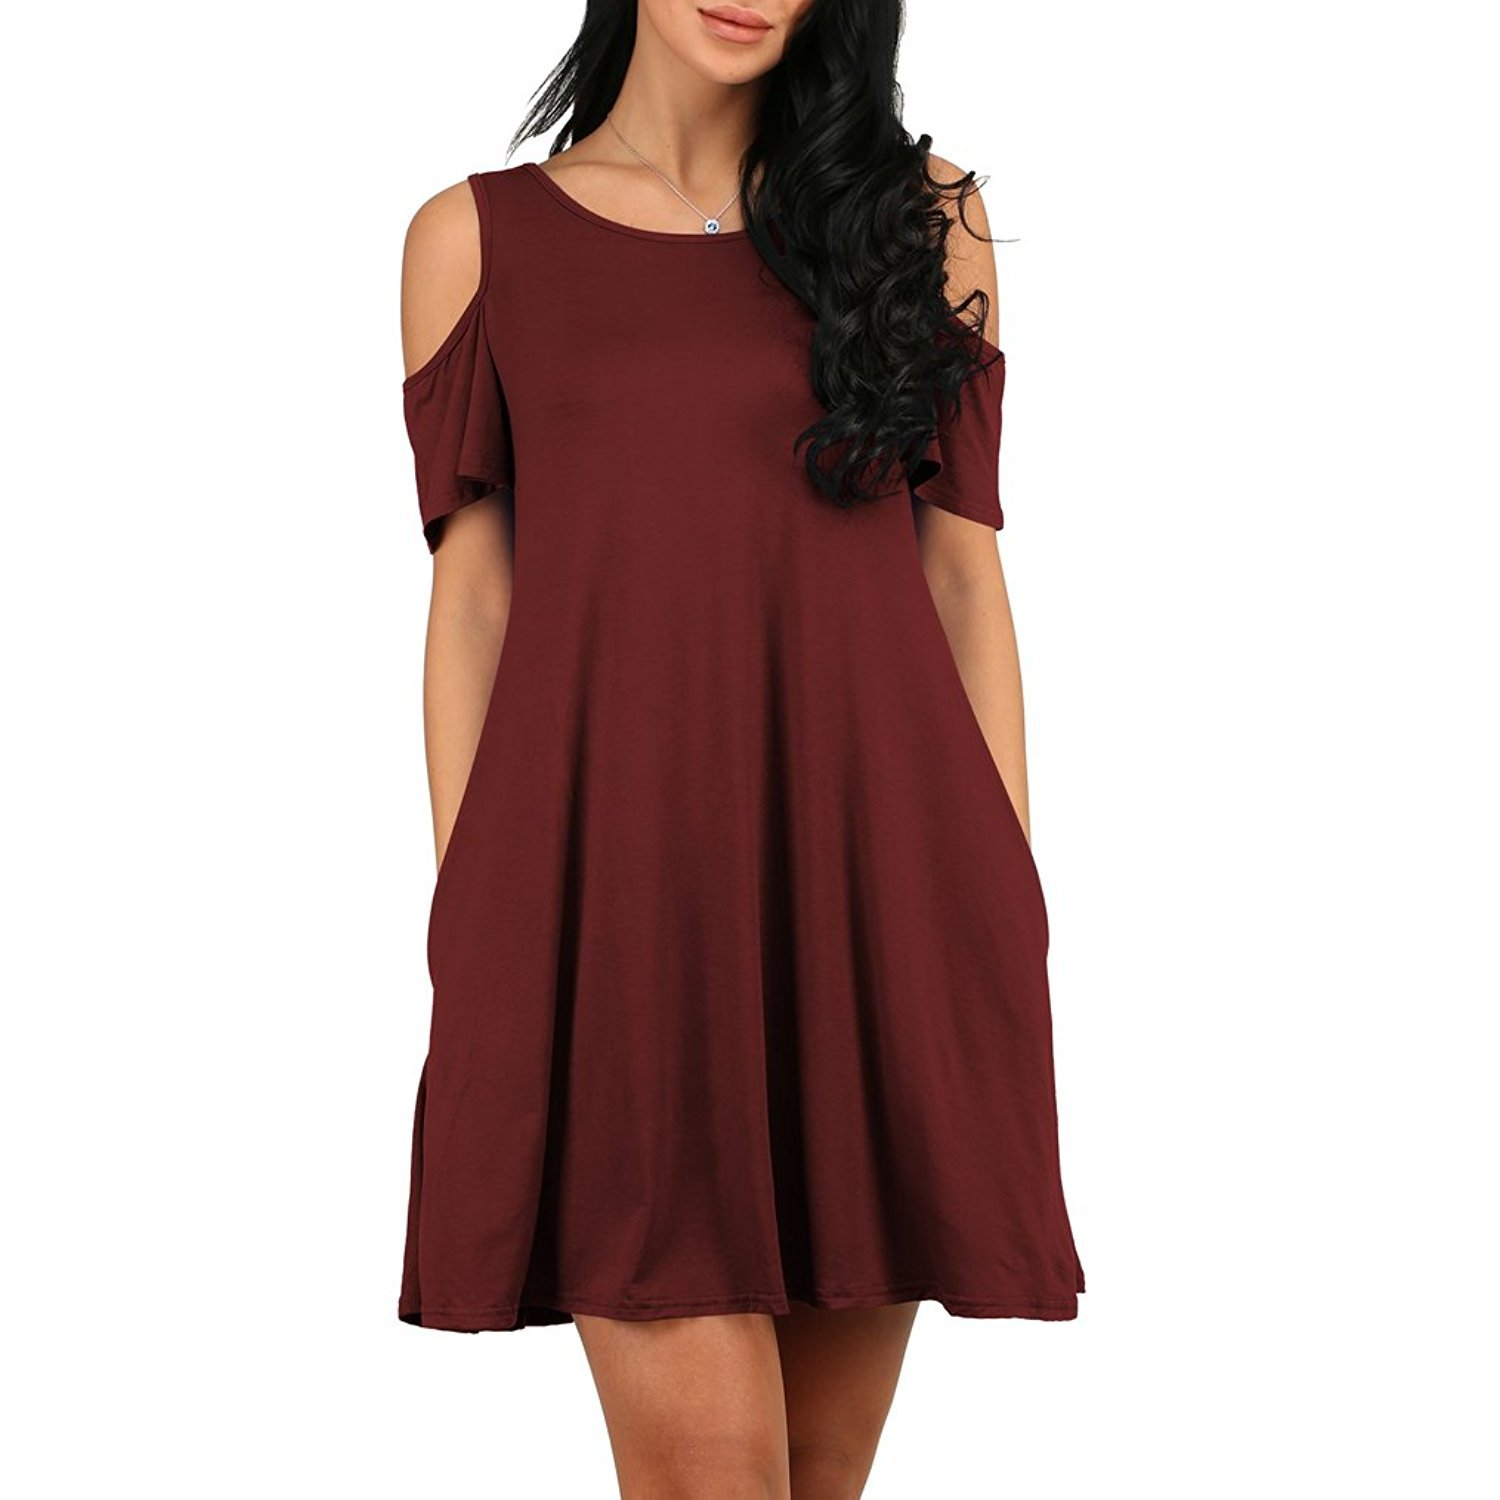 AlohaYM T-Shirt Dresses for Women Casual Summer Dresses Short Sleeve Dress with Pockets Wine XL